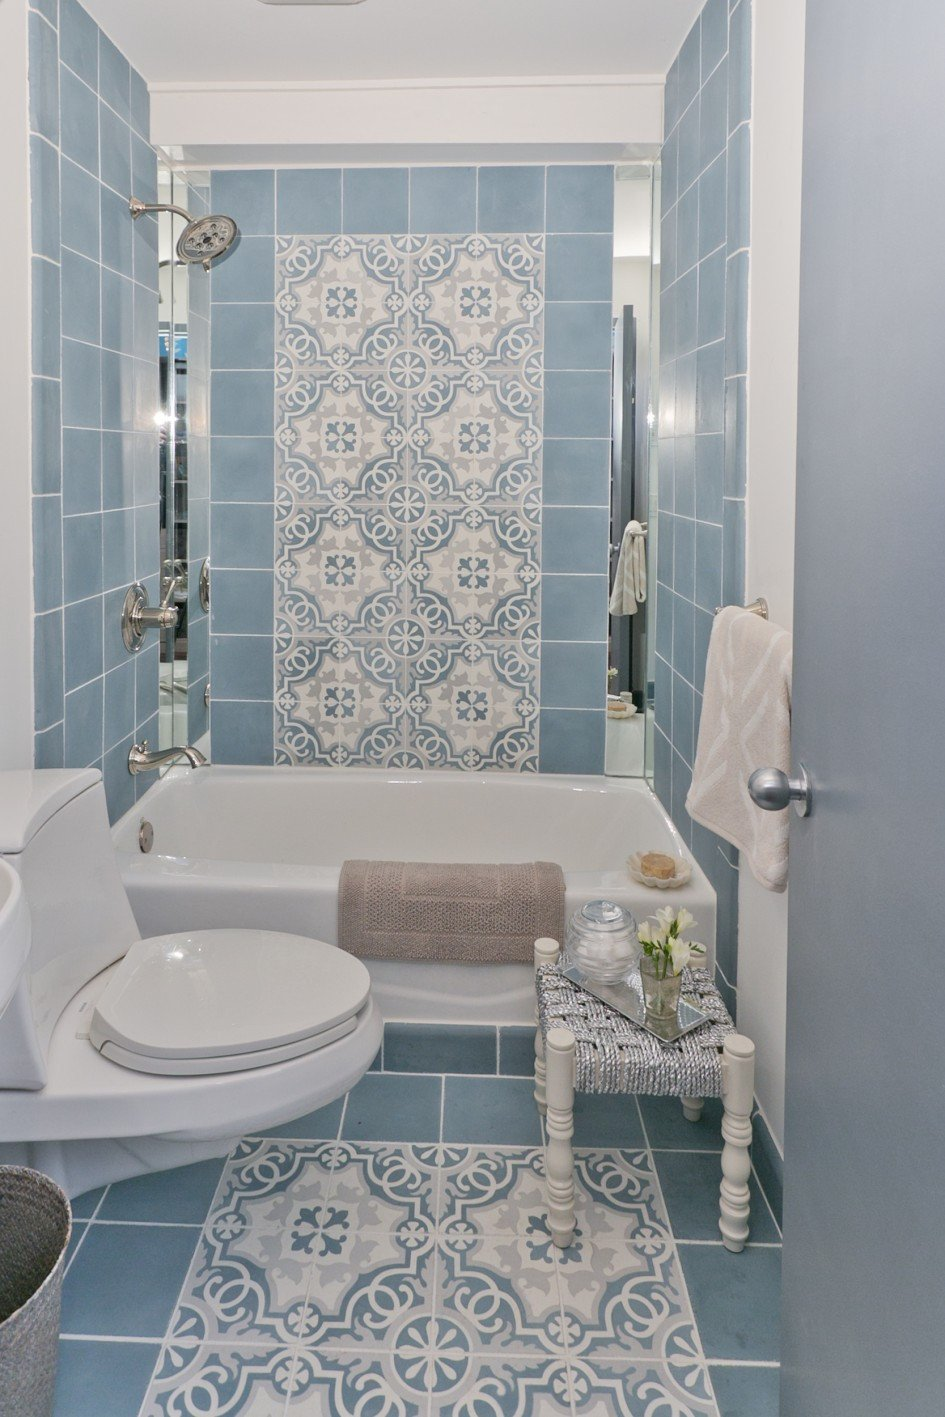 Floor and Decor Bathroom Tile Fresh 30 Great Pictures and Ideas Of Old Fashioned Bathroom Tile Designes